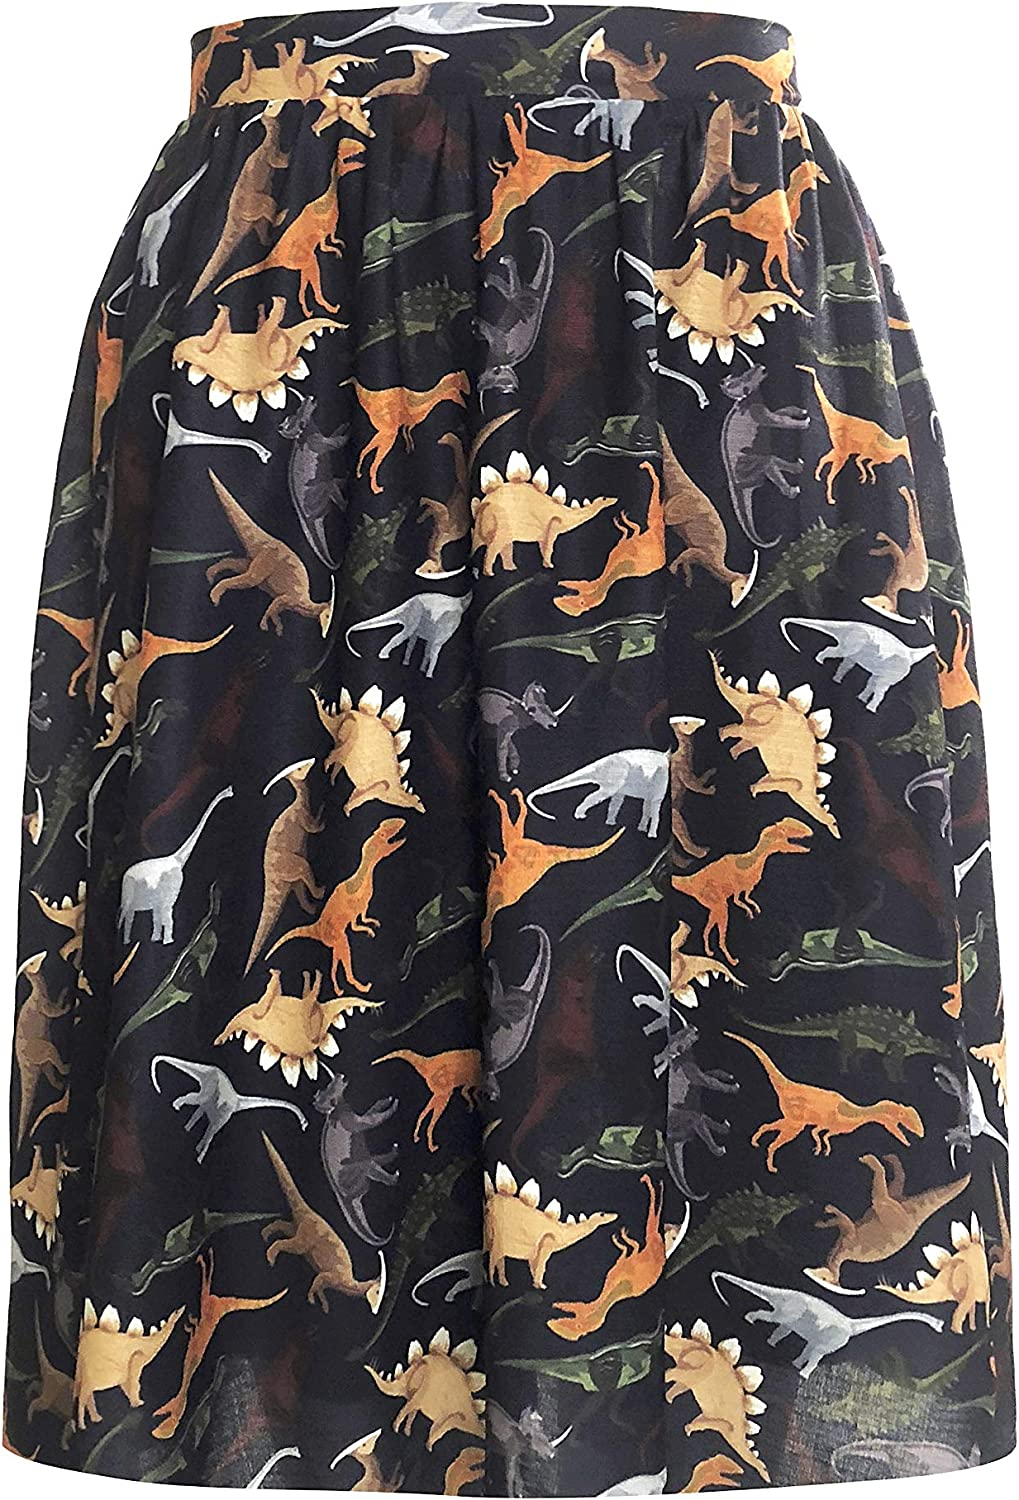 LaVieLente Women's KneeLength Midi Skirt w Stretchable Waist Design in Sloth, Dinosaur and Other Animal Patterns